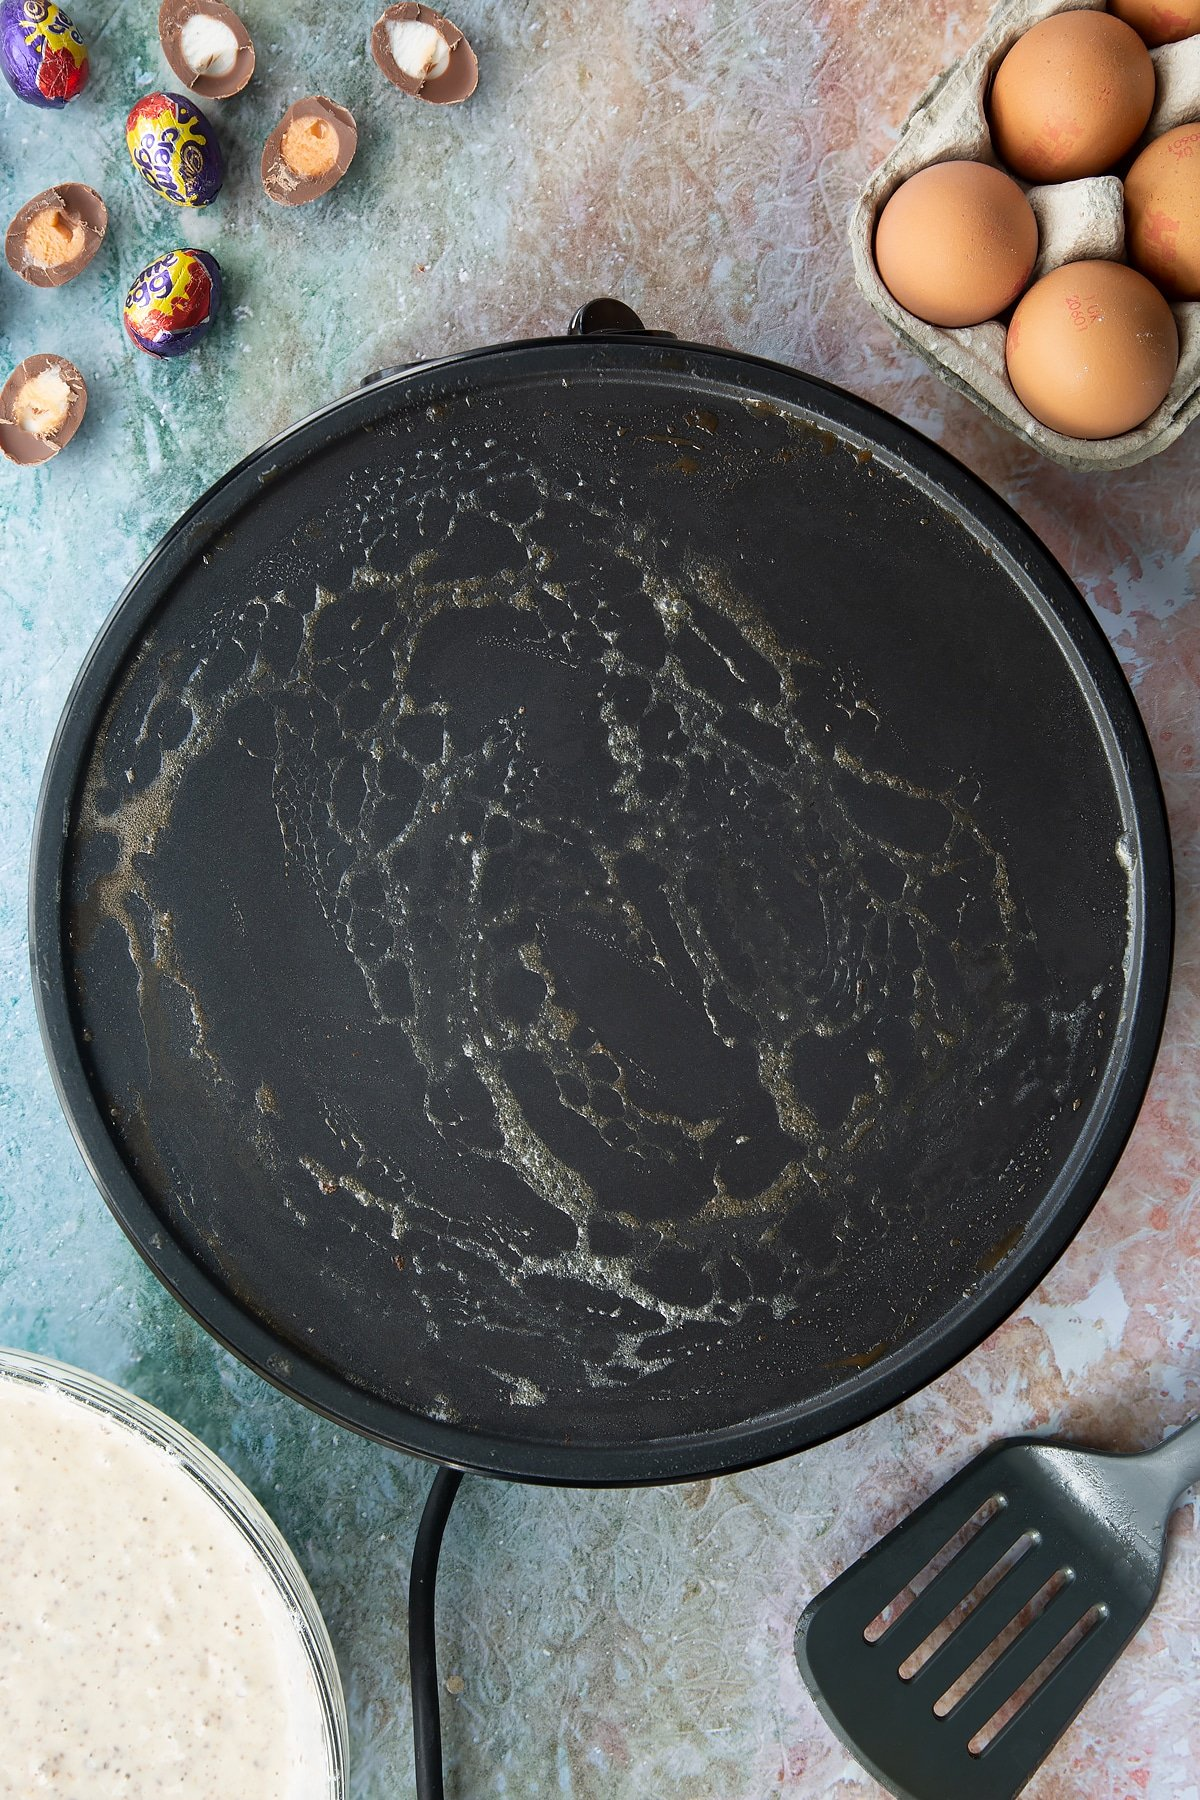 A hot pan with melted butter. Ingredients to make Creme Egg pancakes surround the pan.